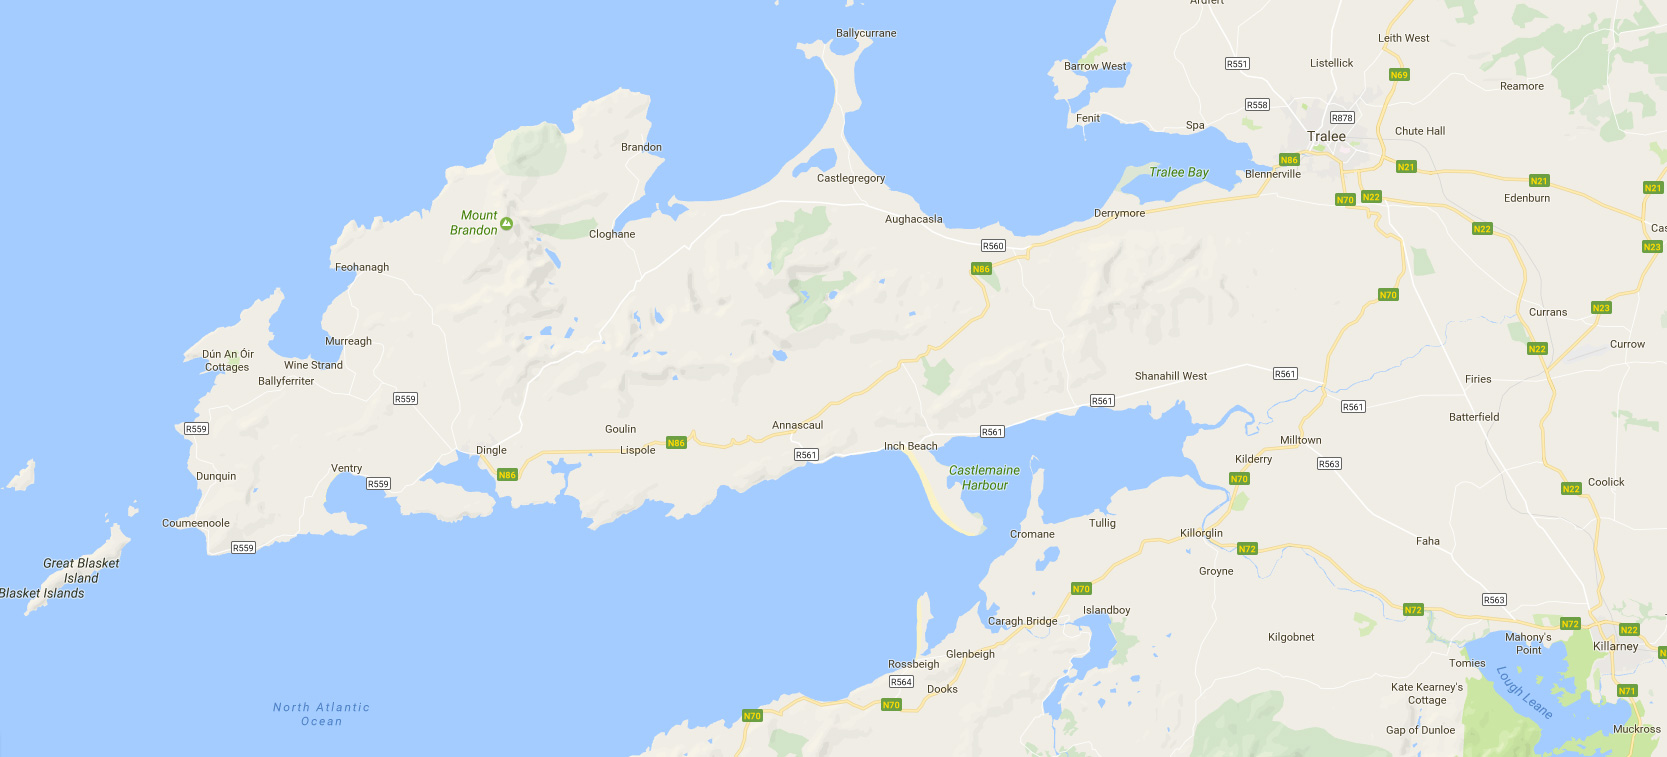 map of dingle